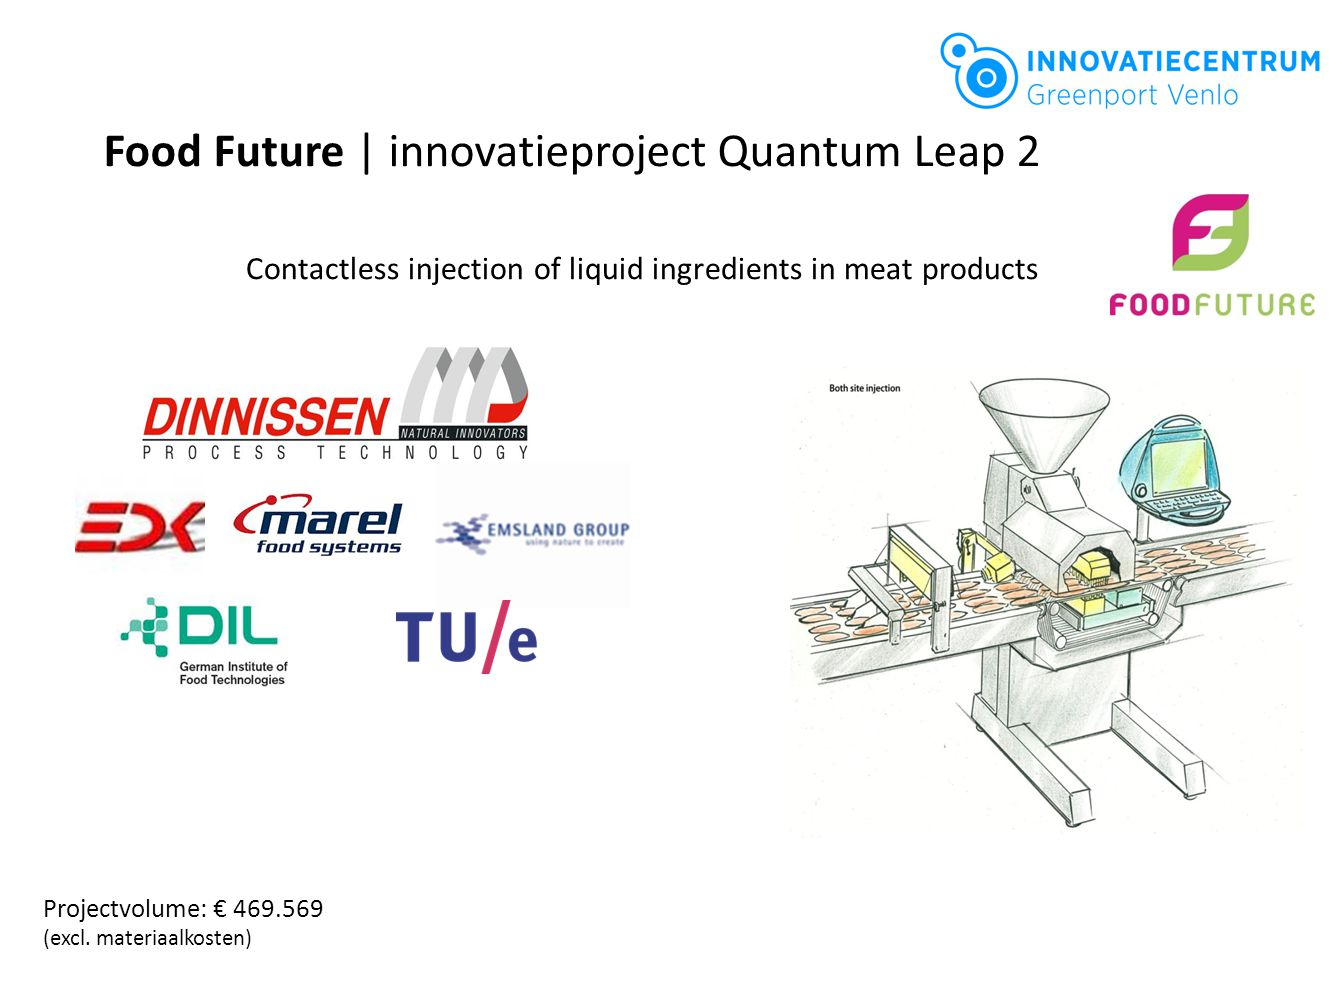 Projectvolume: € 469.569 (excl. materiaalkosten) Contactless injection of liquid ingredients in meat products Food Future | innovatieproject Quantum L